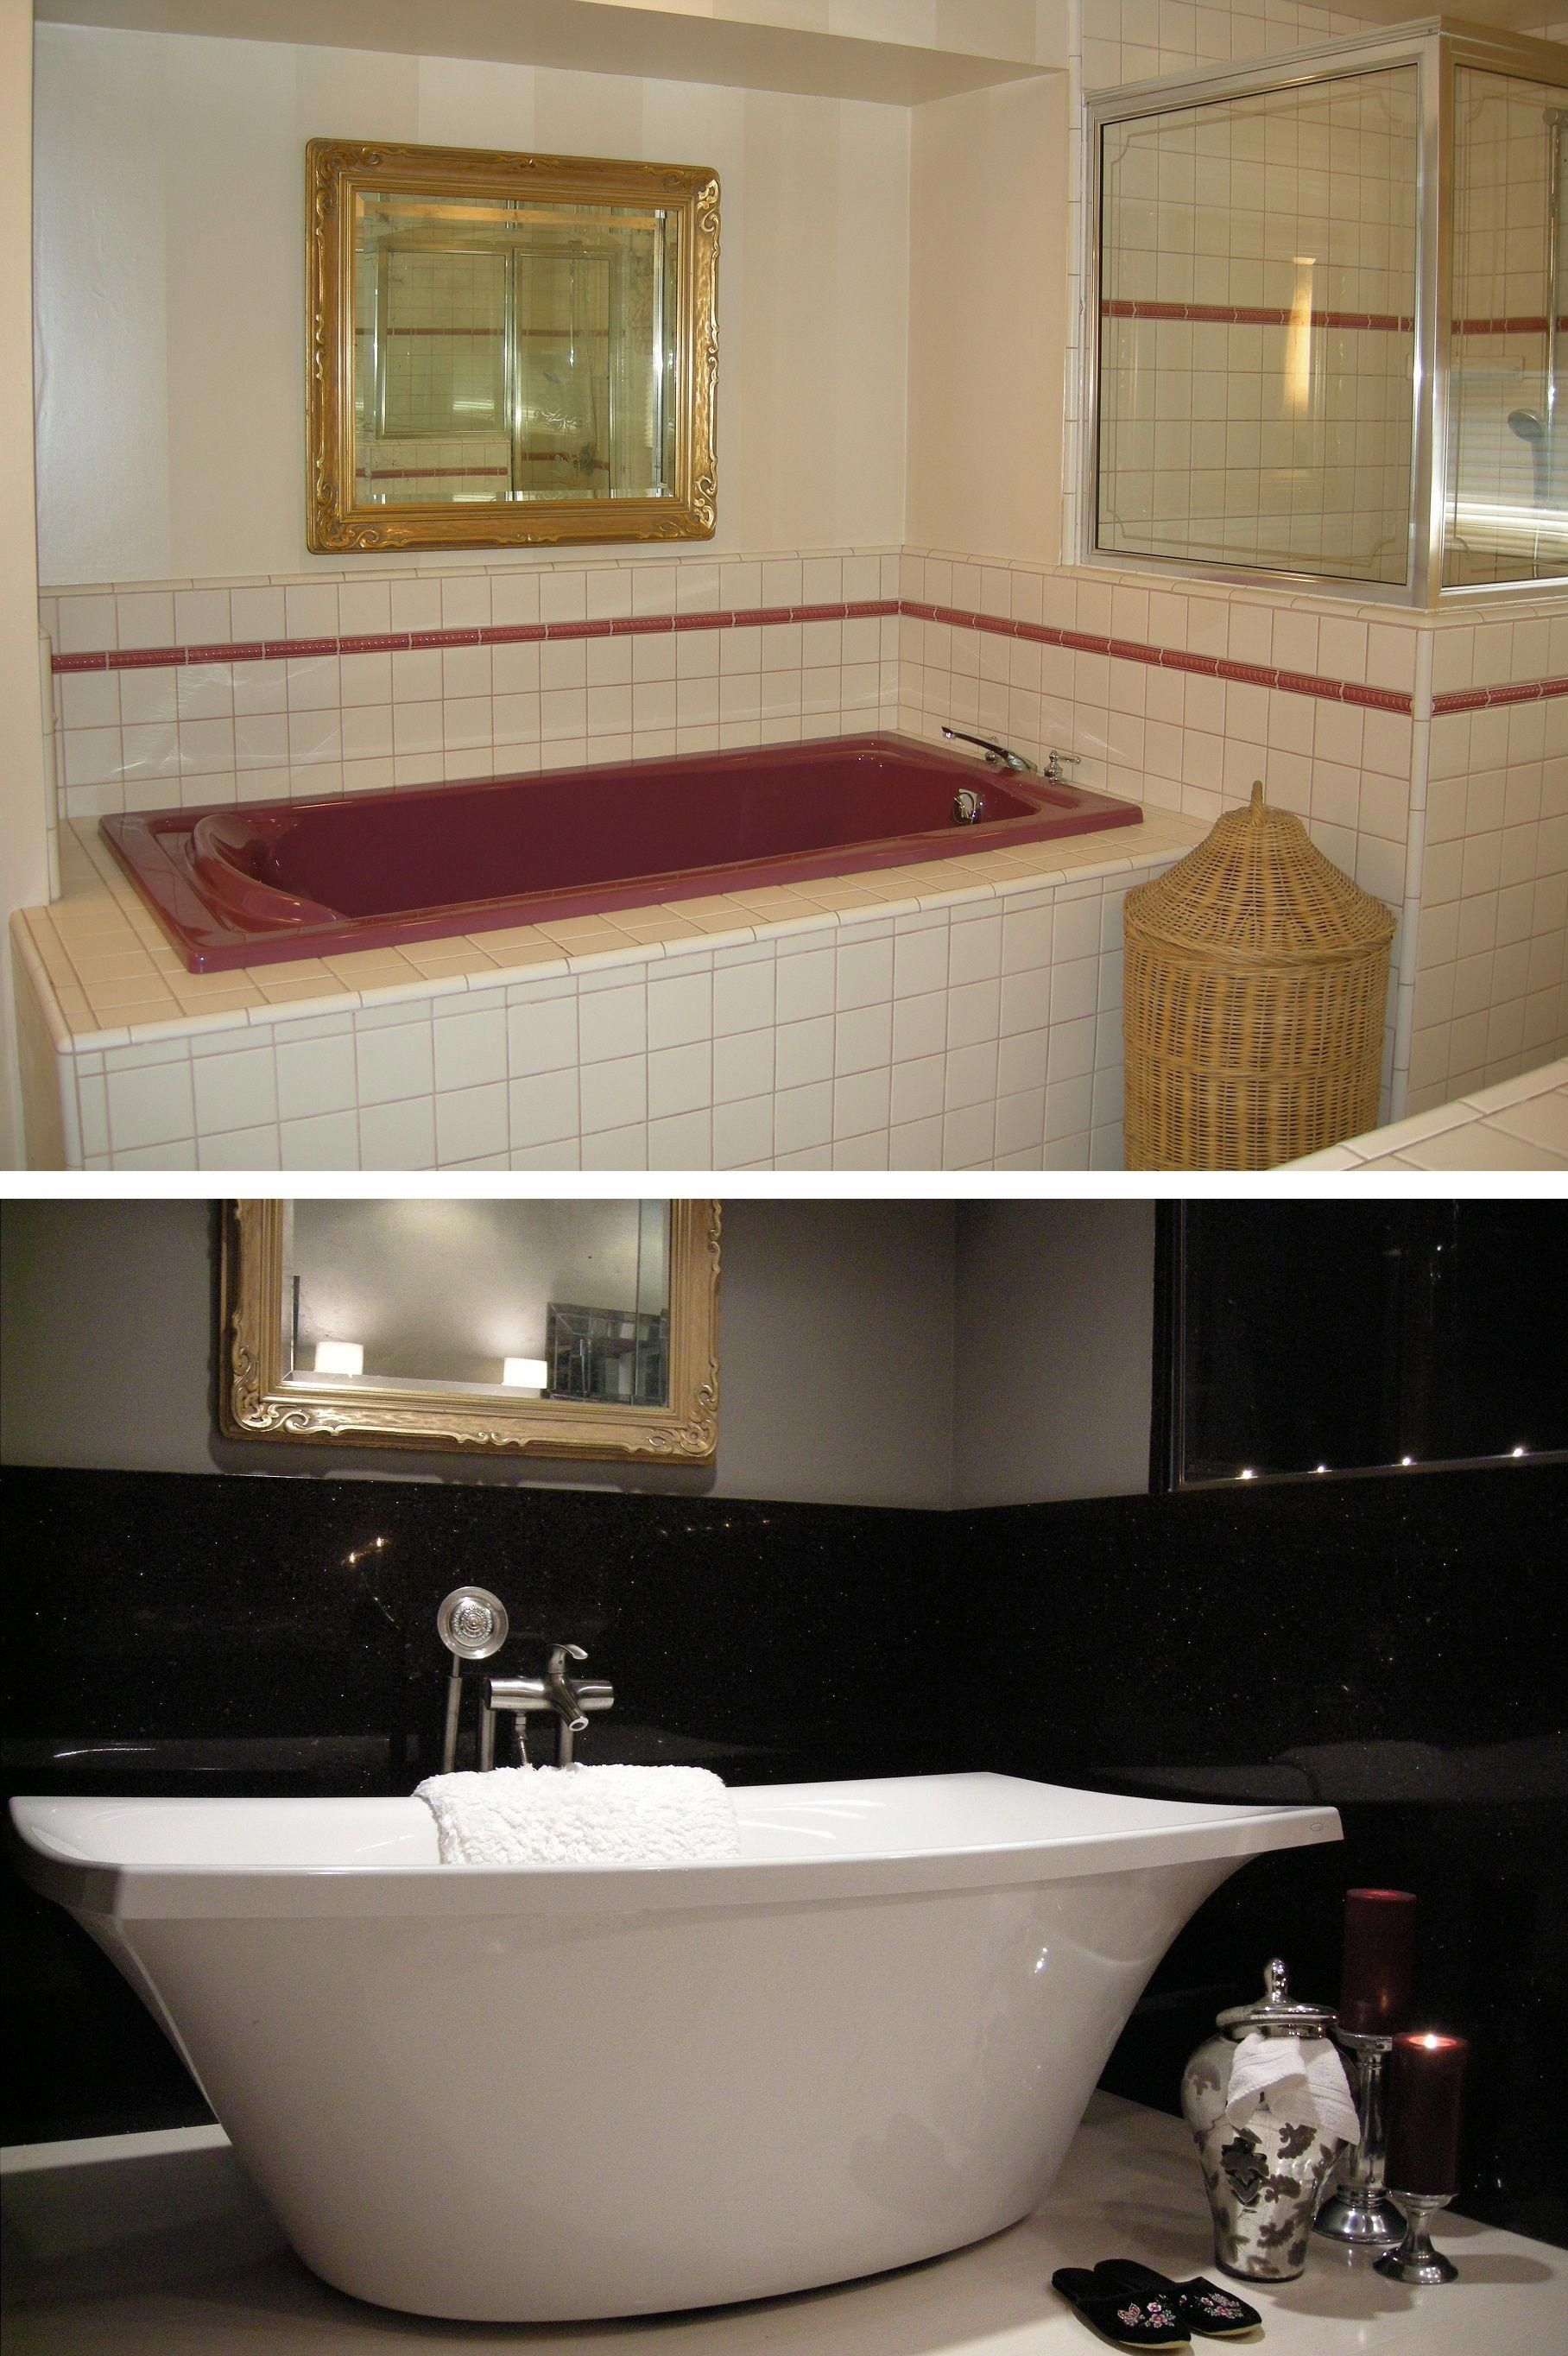 Bathroom Bathtub Remodel Before And After By Granite Transformations Remodelingbeforeandafter